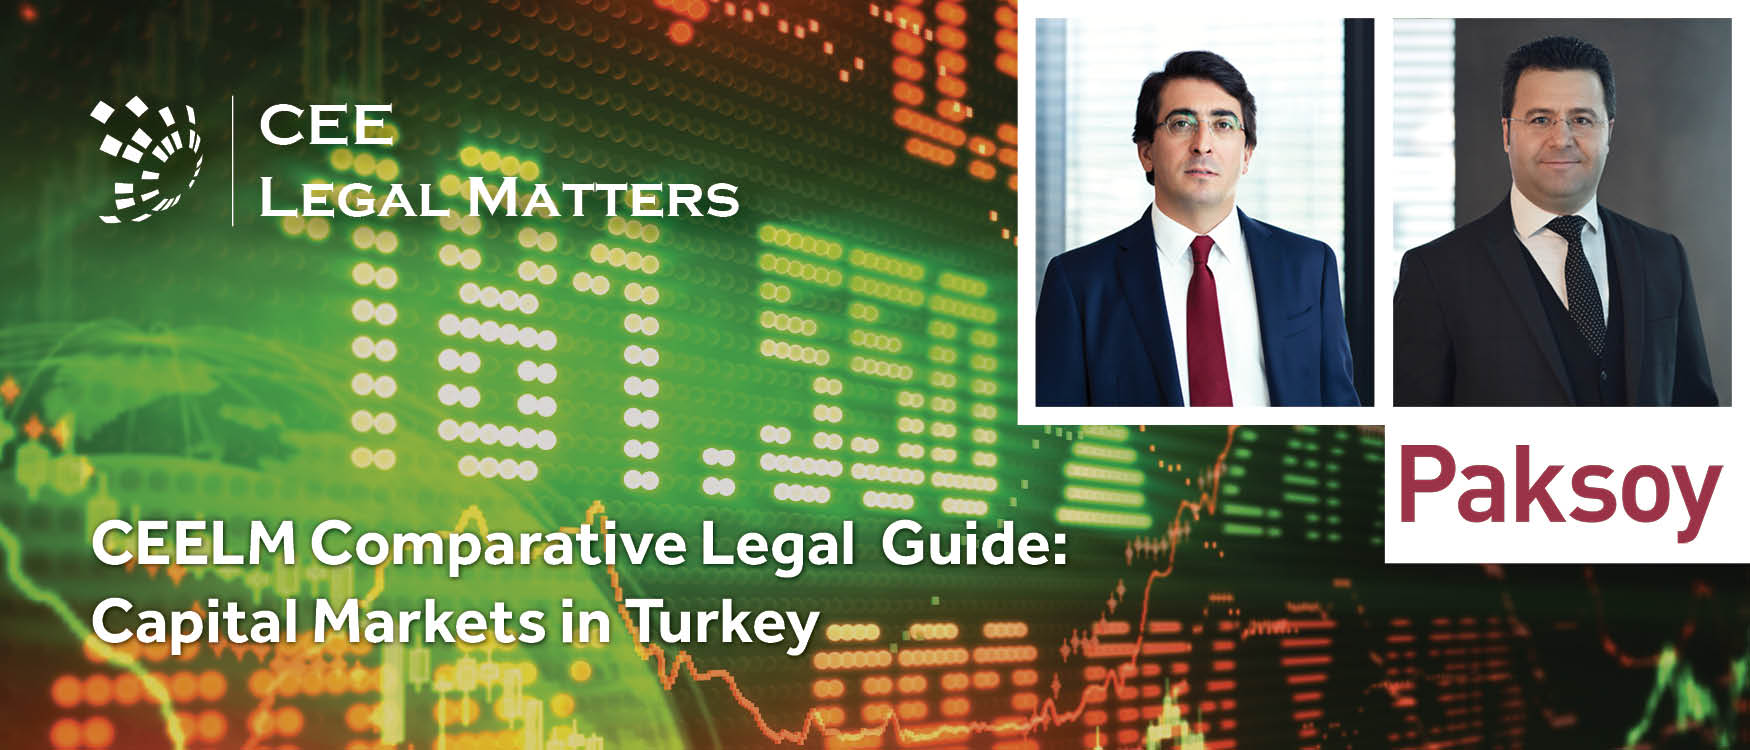 Capital Markets in Turkey